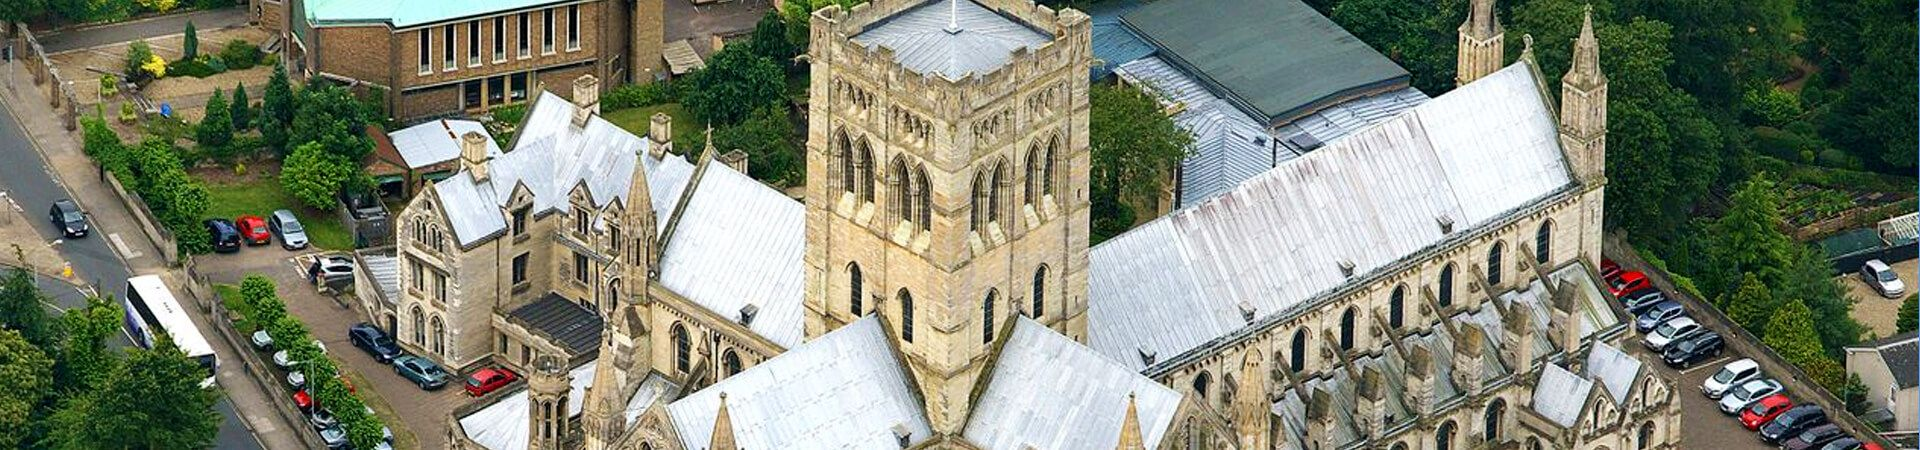 Cathedral-of-St-John-the-Baptist-Norwich-Birds-eye-compressor